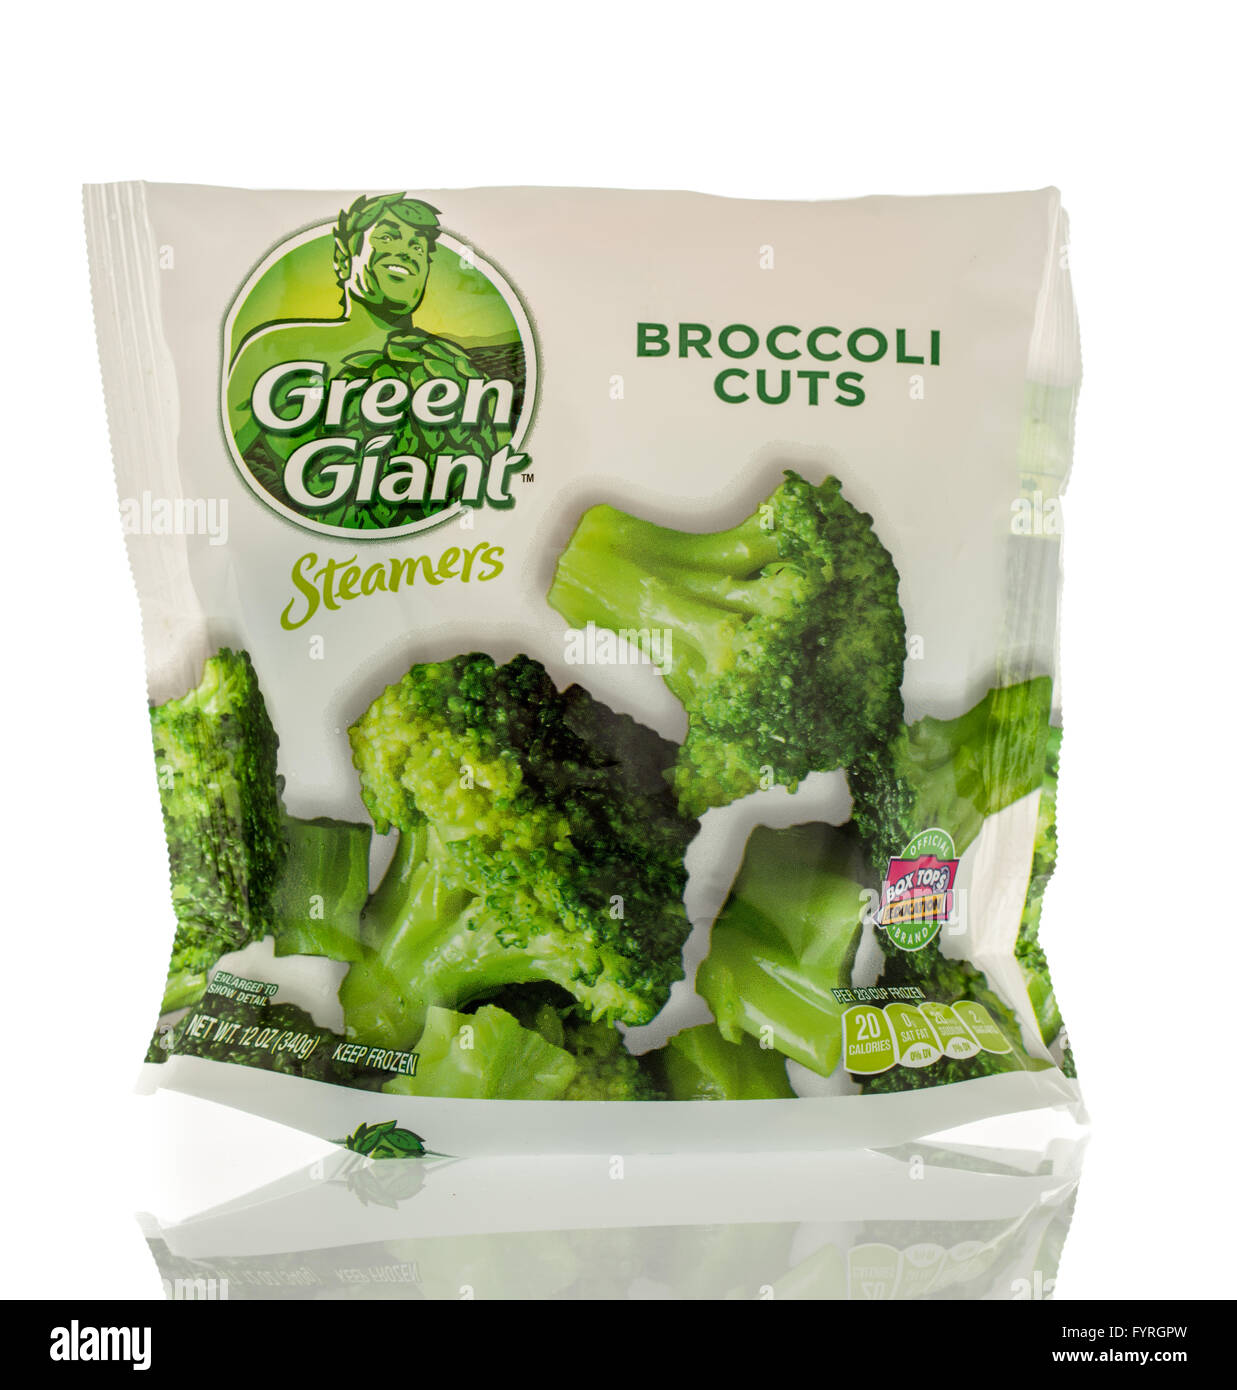 Winneconne, WI - 13 March 2016: A bag of Green Giant broccoli cuts - Stock Image